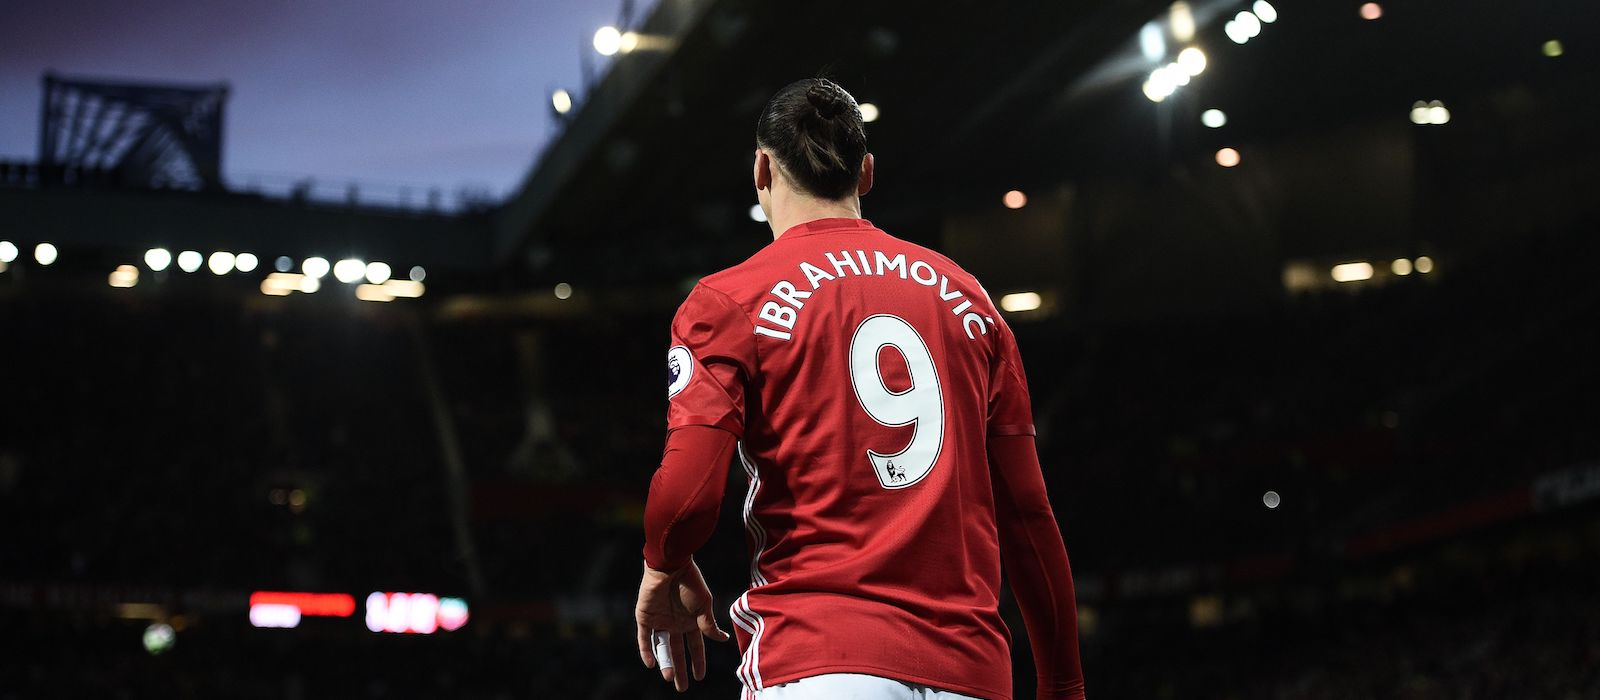 Jonny Evans names Zlatan Ibrahimovic as his hardest opponent